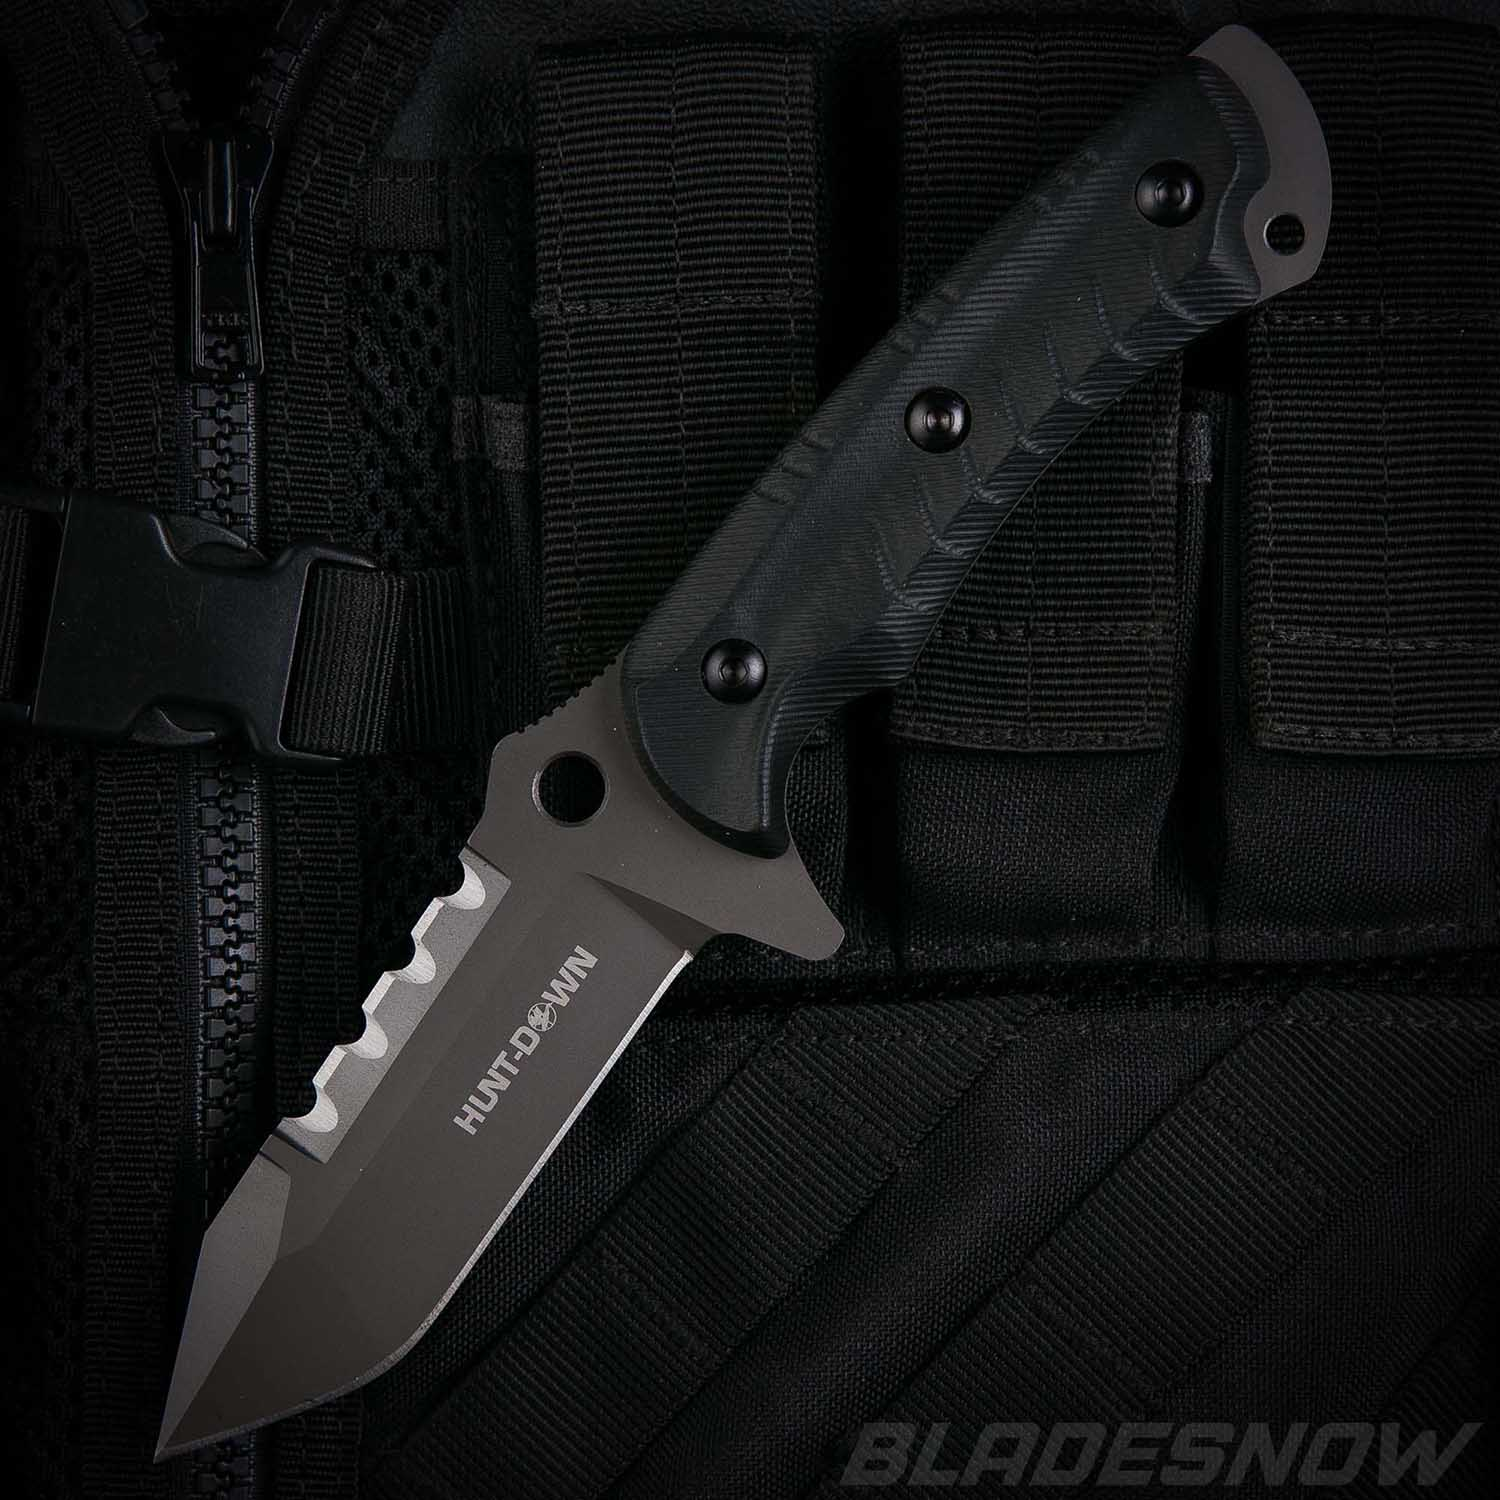 Combat Tanto G10 + Kydex Sheath